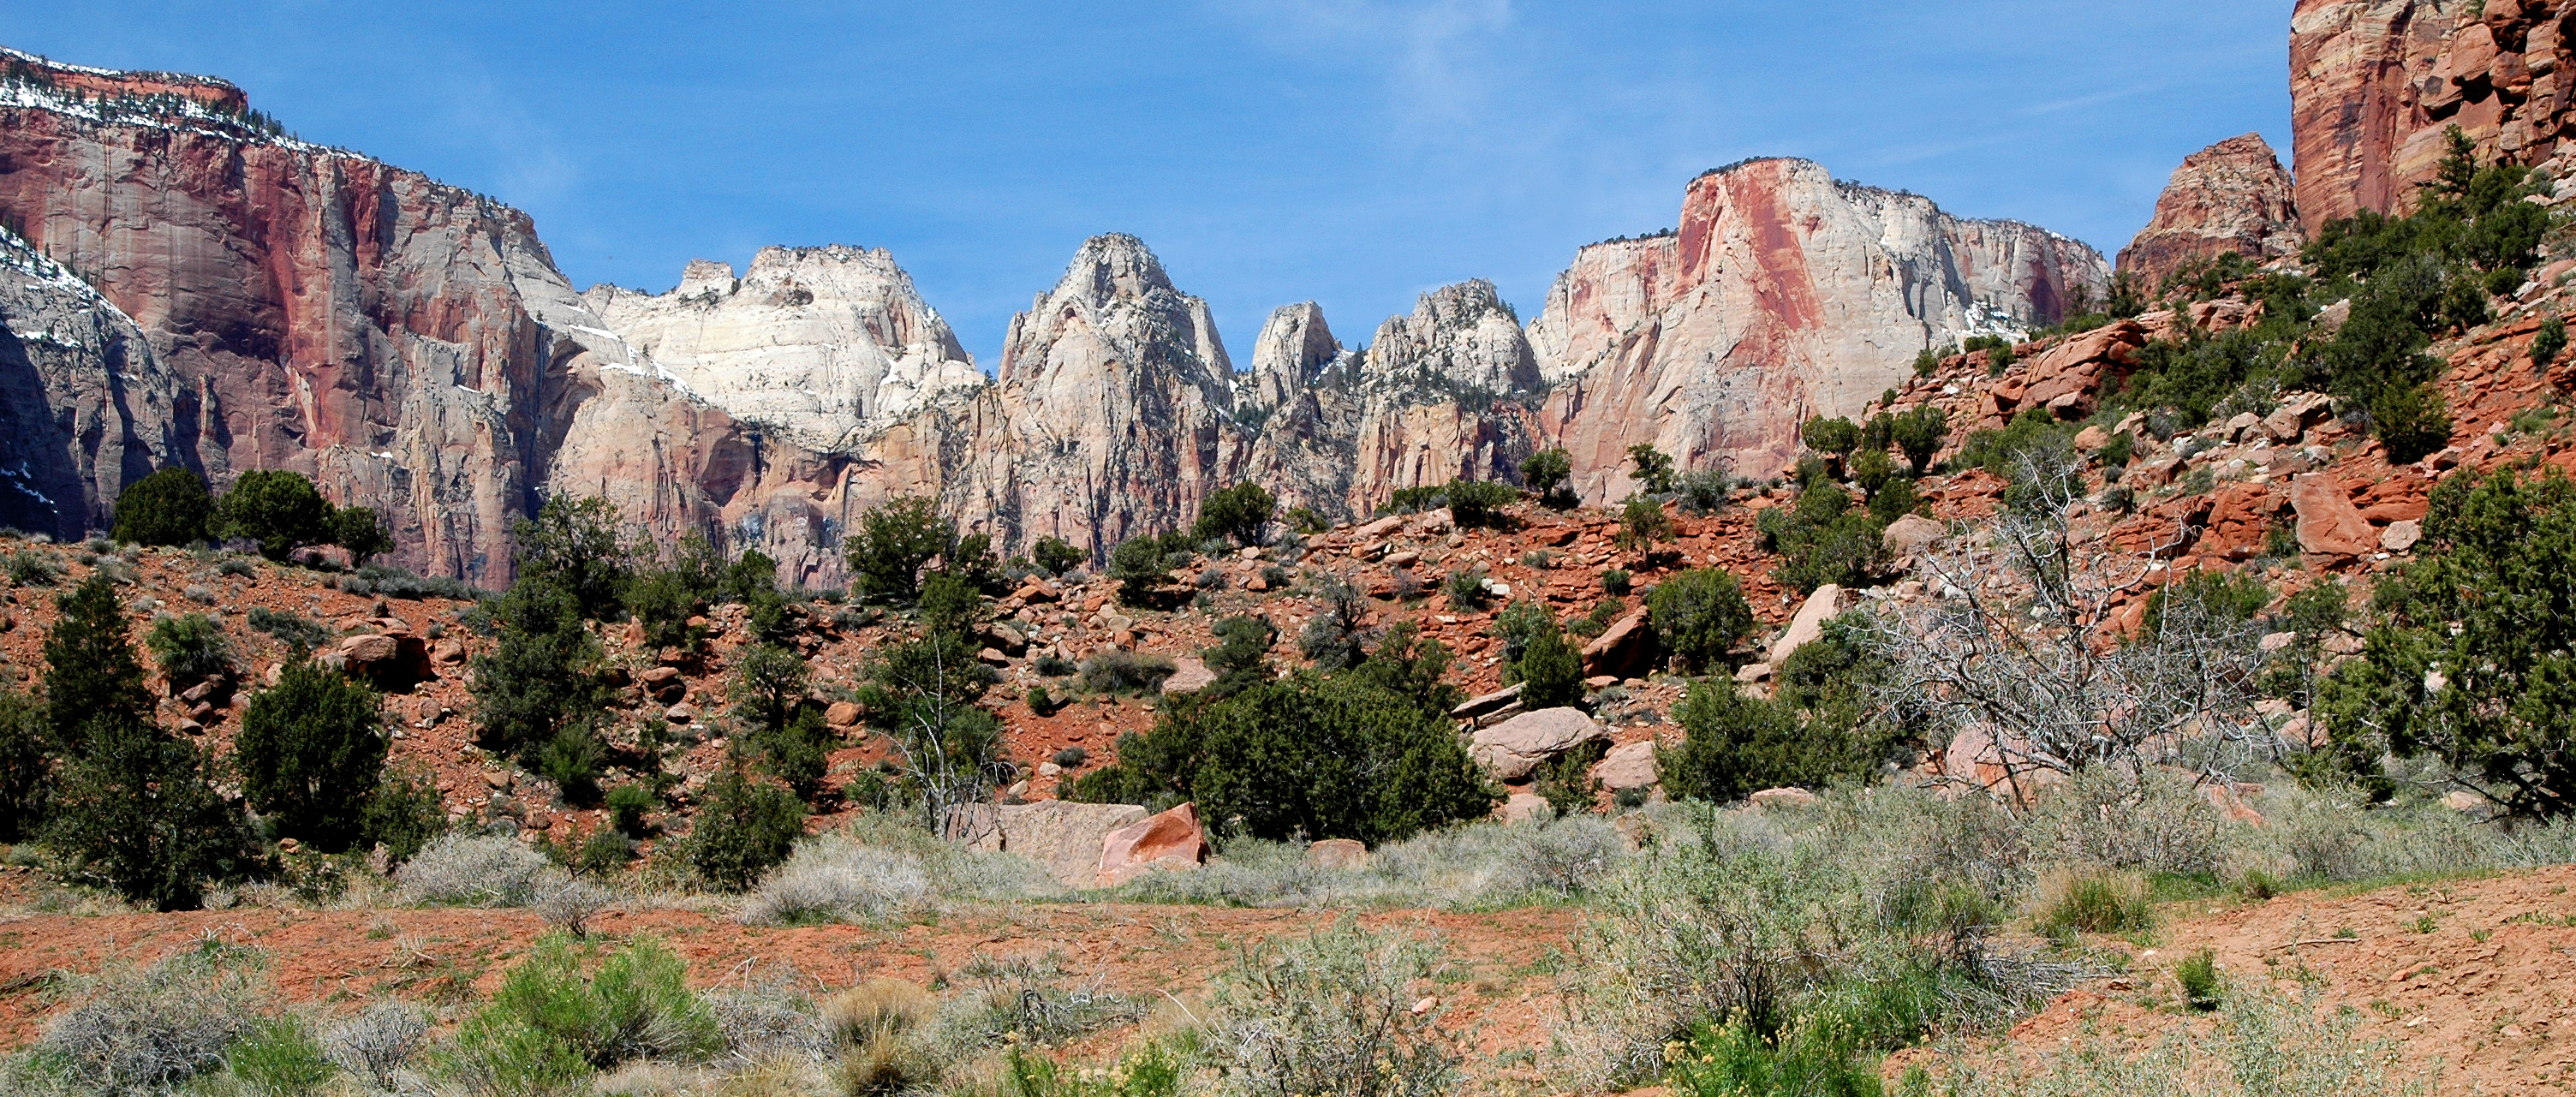 Picturesque Zion Mountains